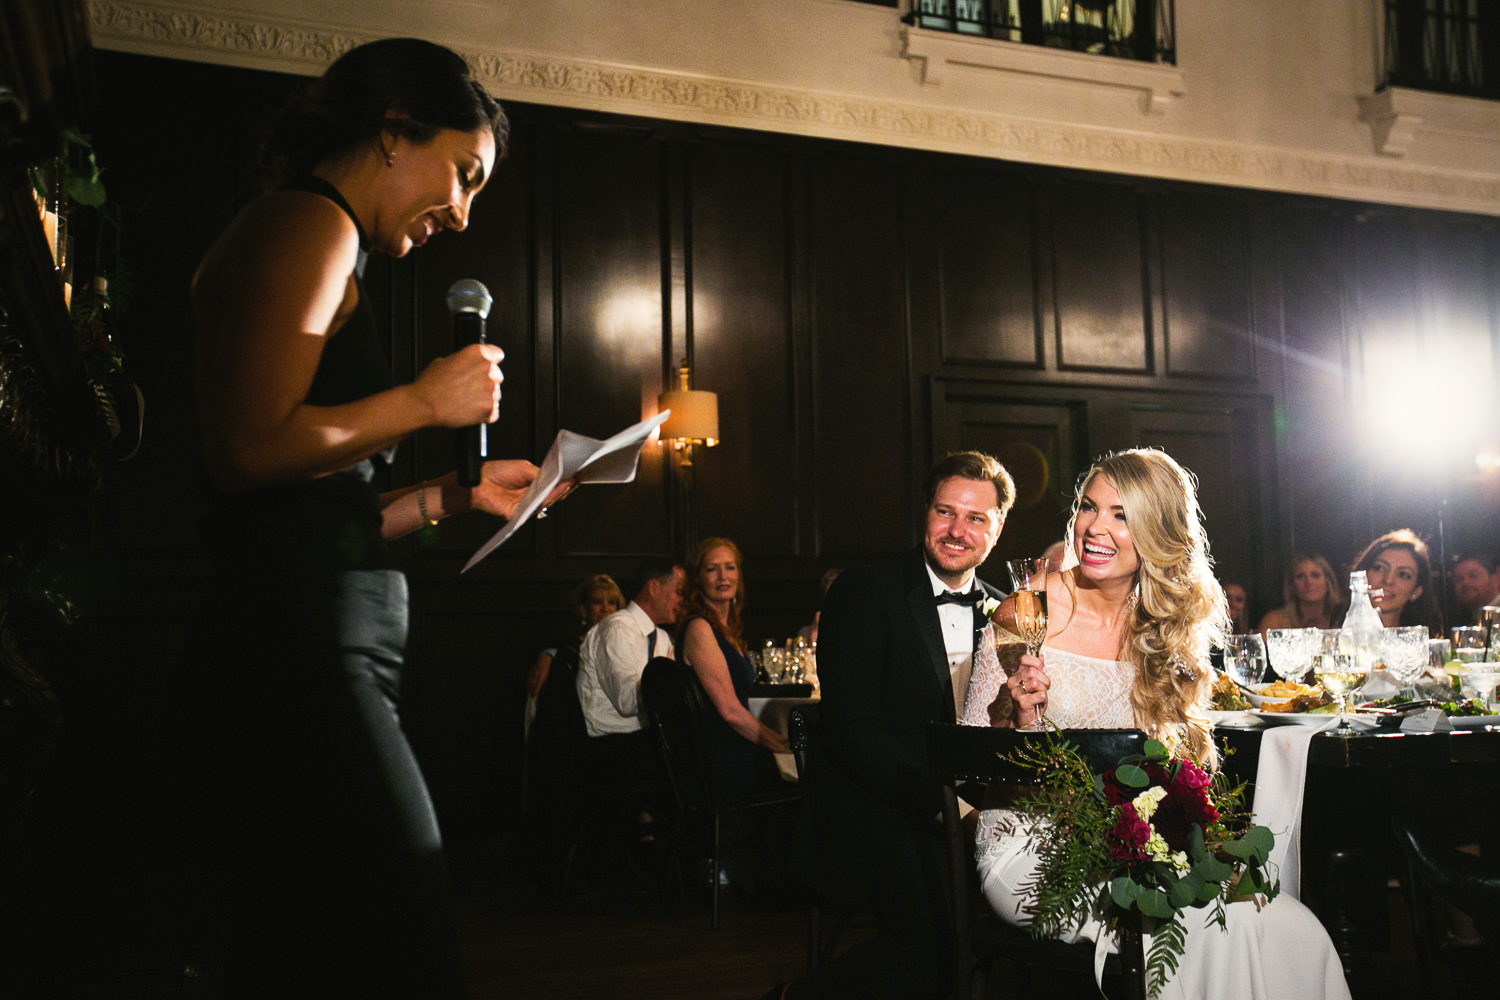 Ebell Long Beach Wedding - Toasting being given at the reception